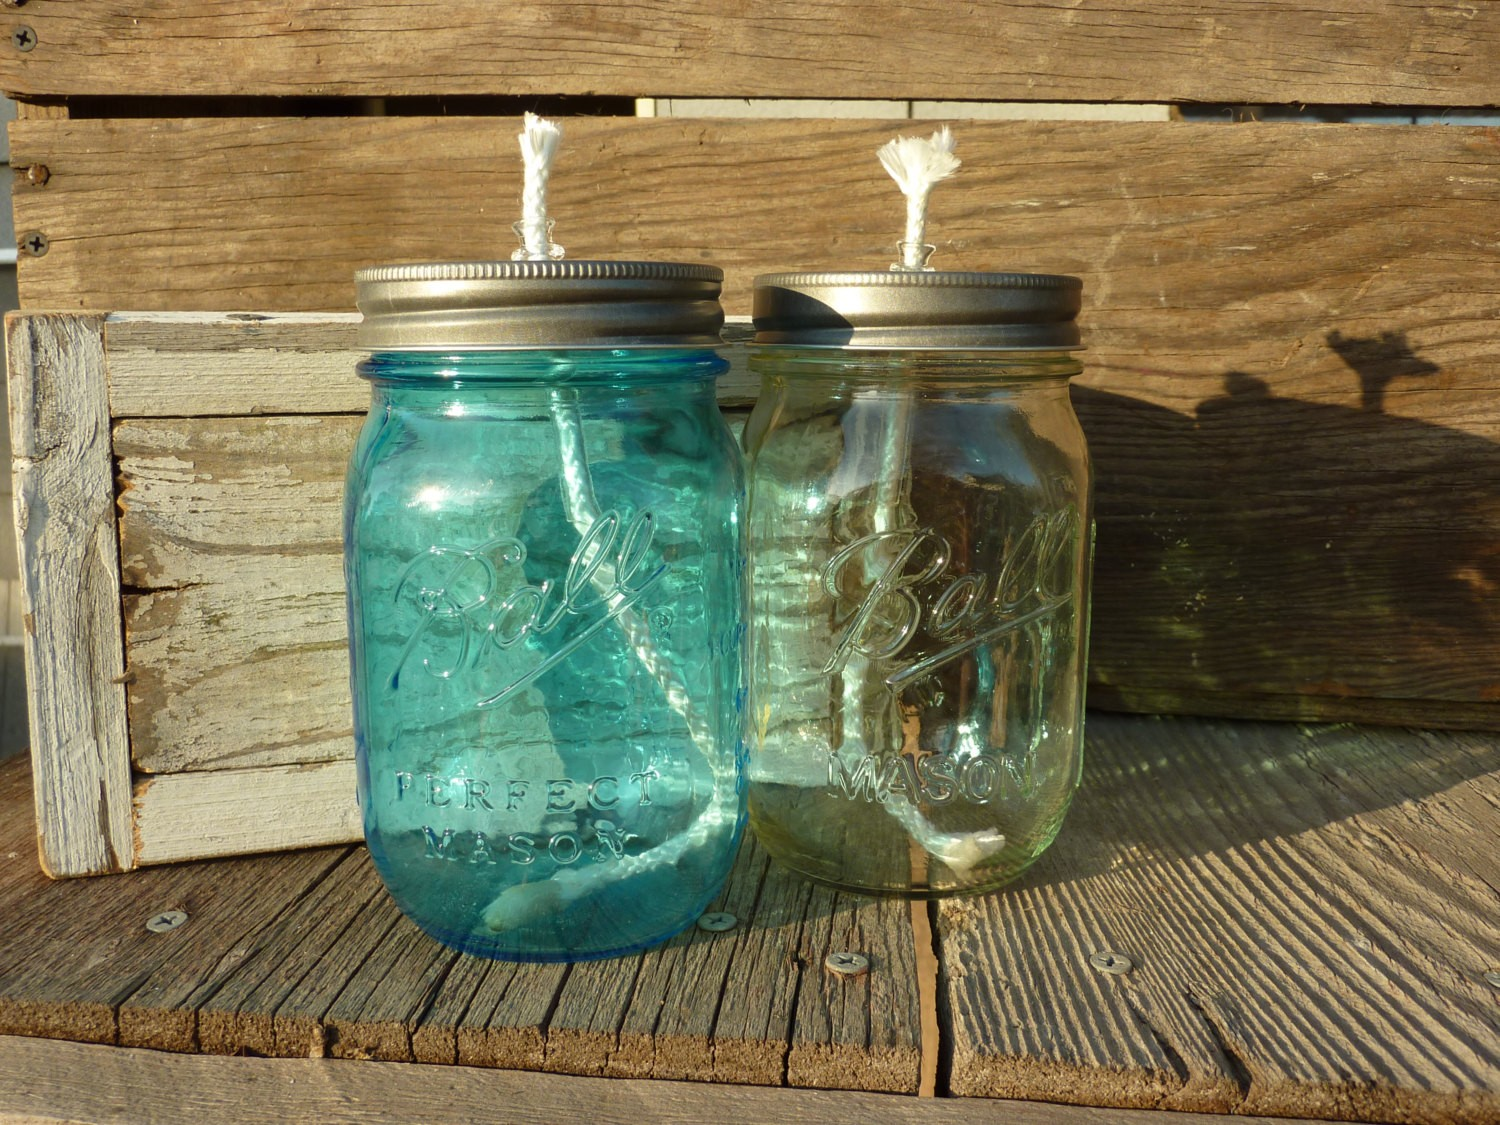 2014 diy outdoor lightings - set of 3 mason jar oil lamps buy in bulk and-f51334